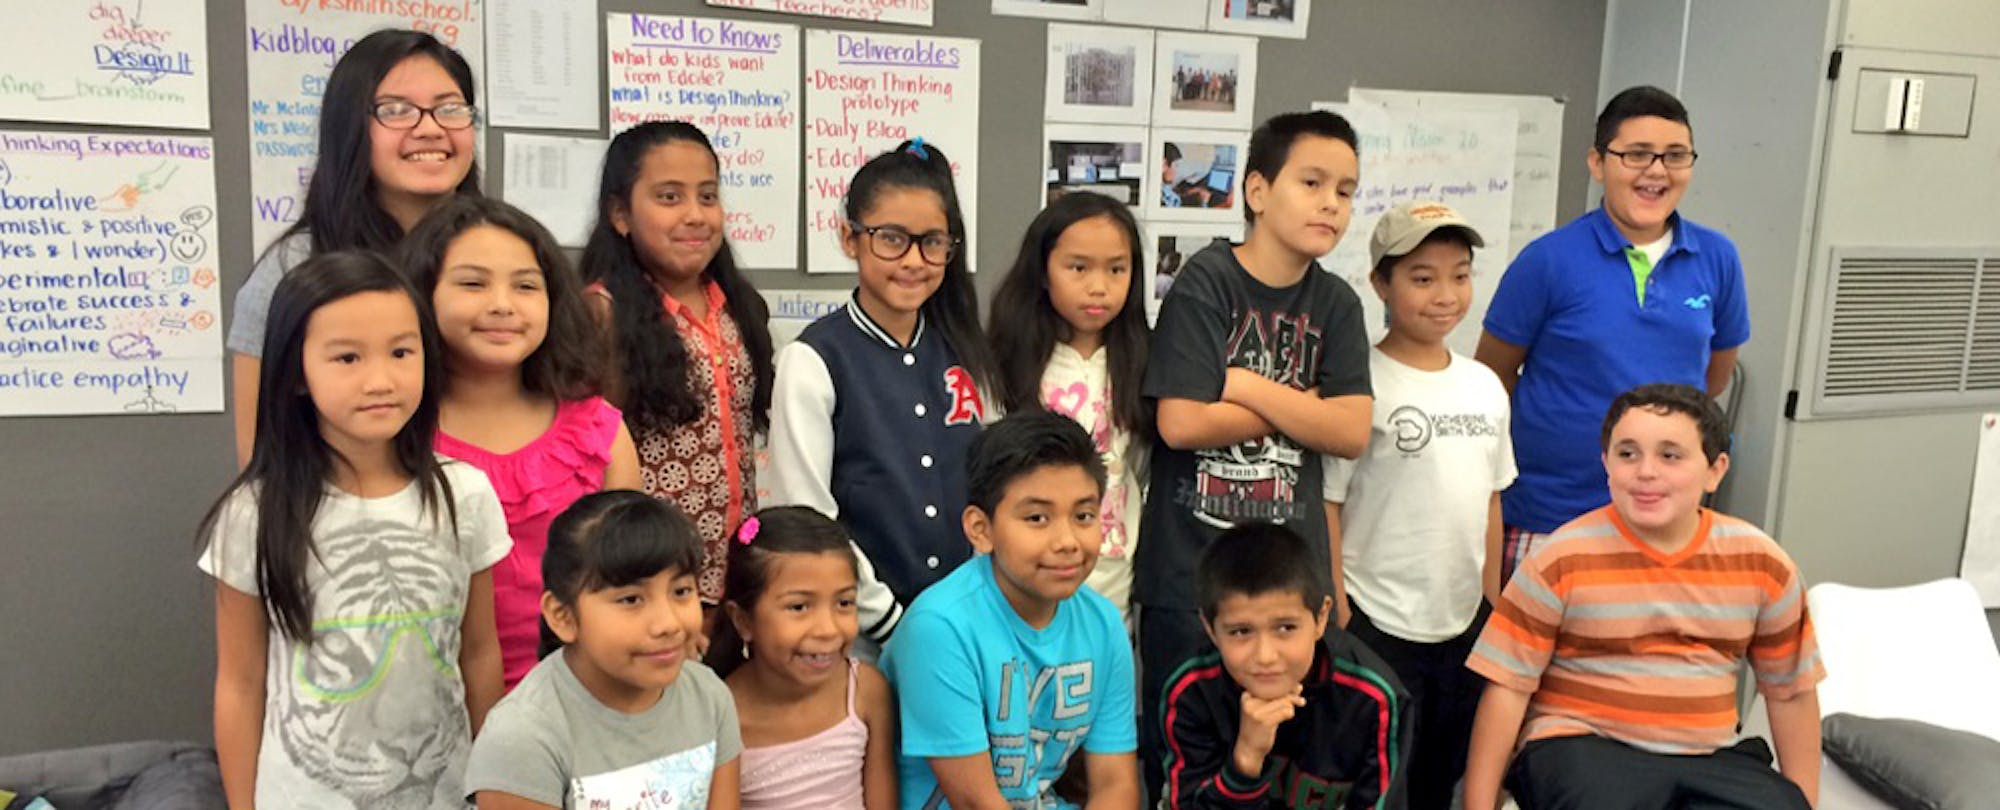 Future Bosses in the Making: A Meeting with 'Junior CEOs' at Katherine Smith Elementary